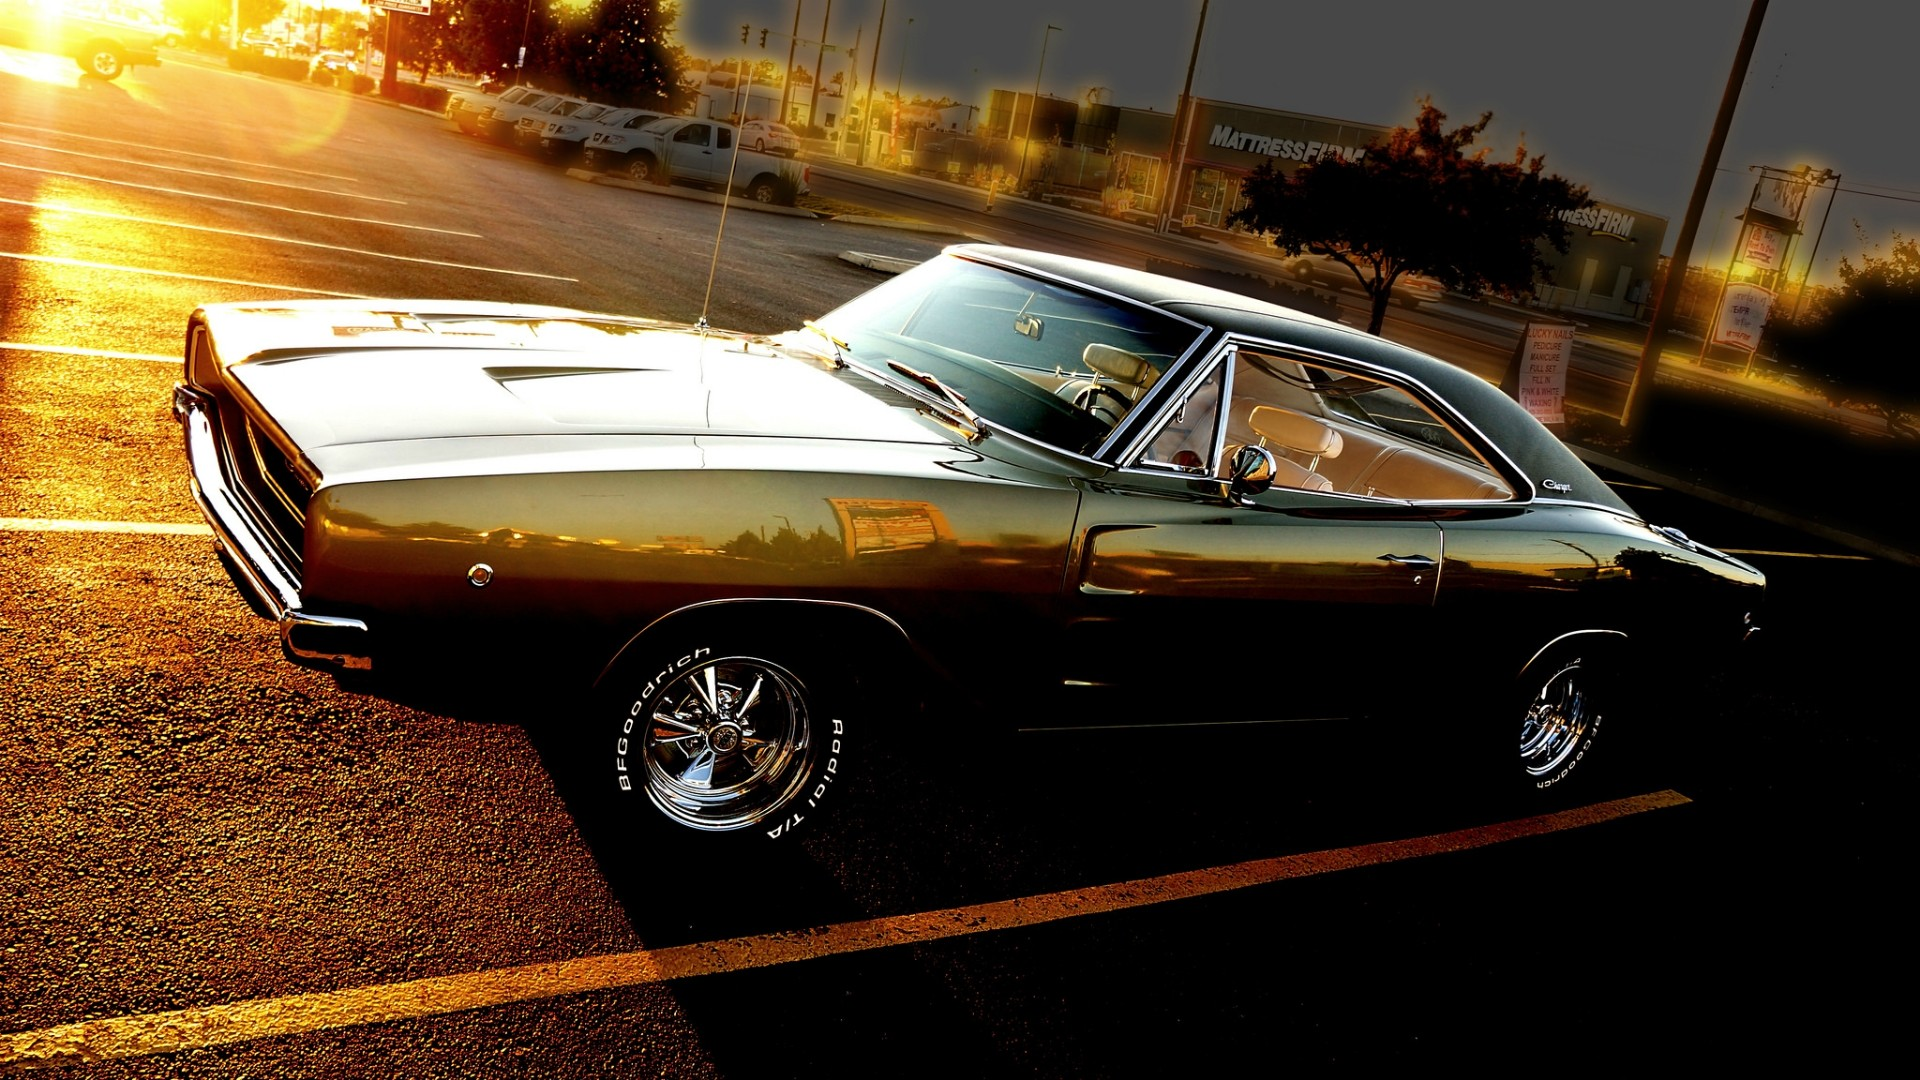 Dodge Charger Wallpaper Image